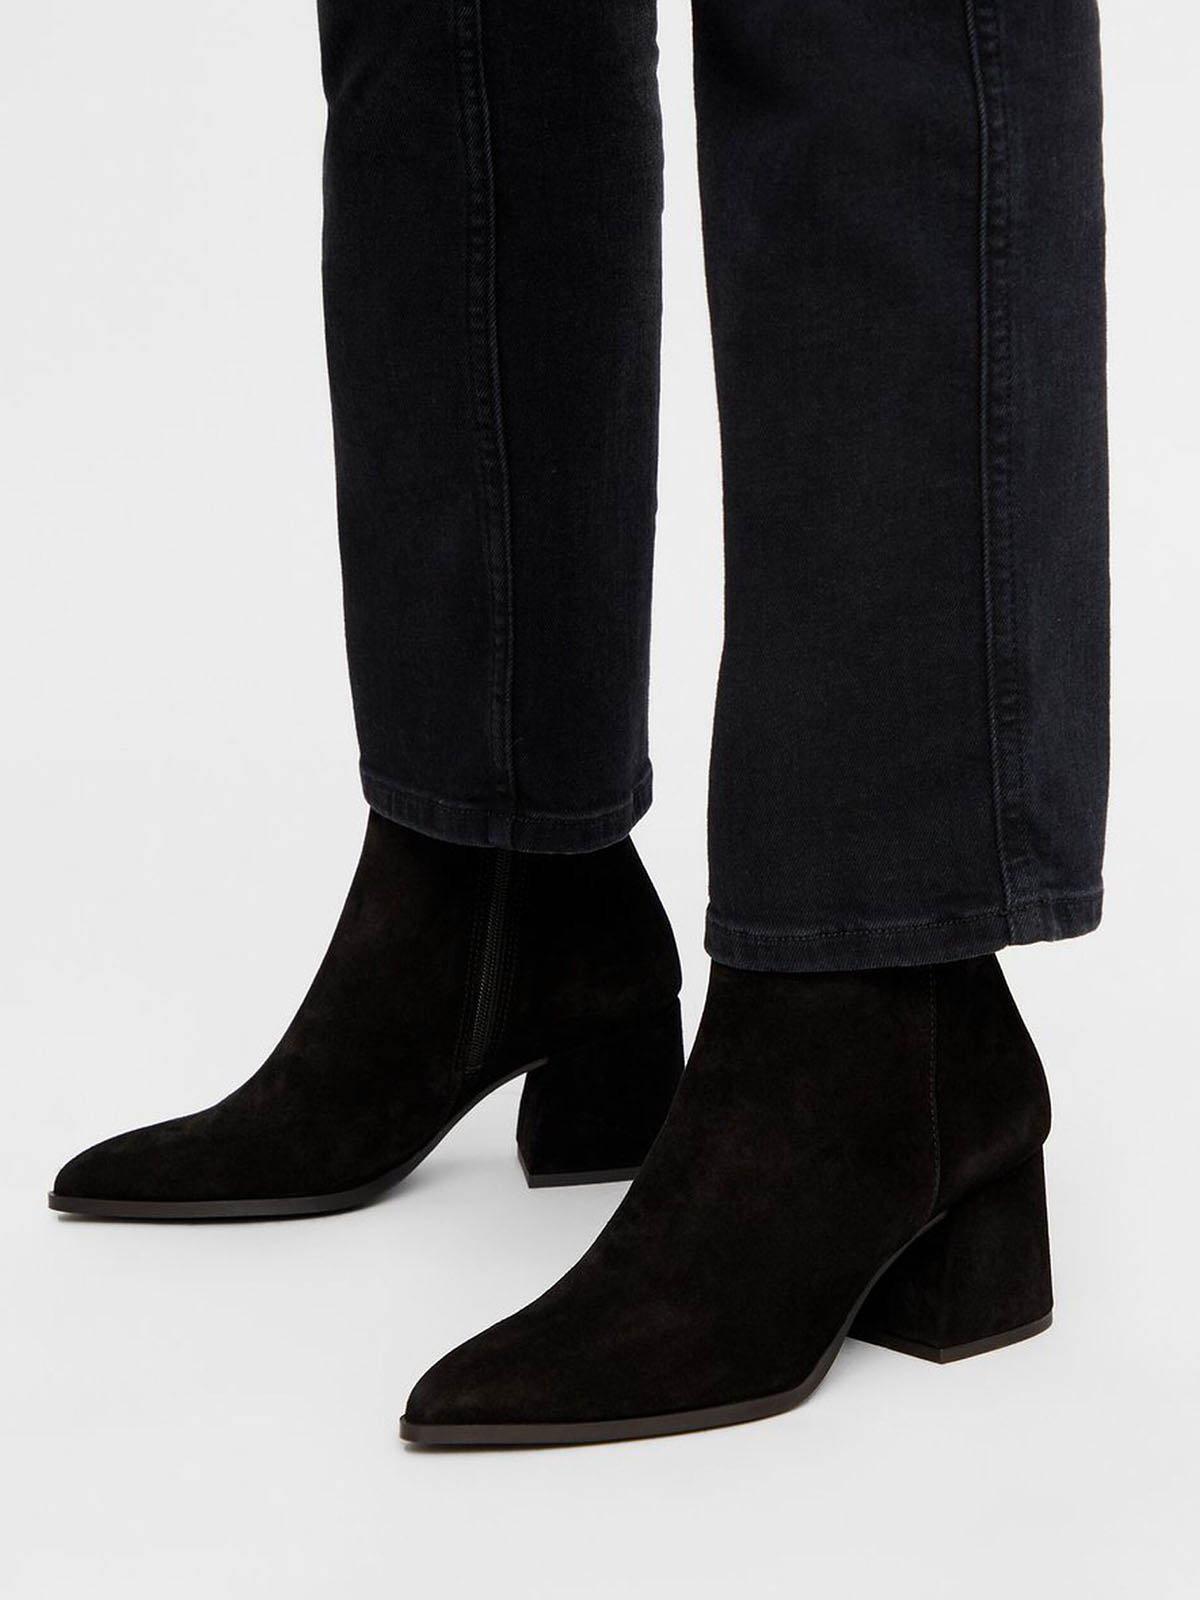 BIADONATA Ankle Boot - Black